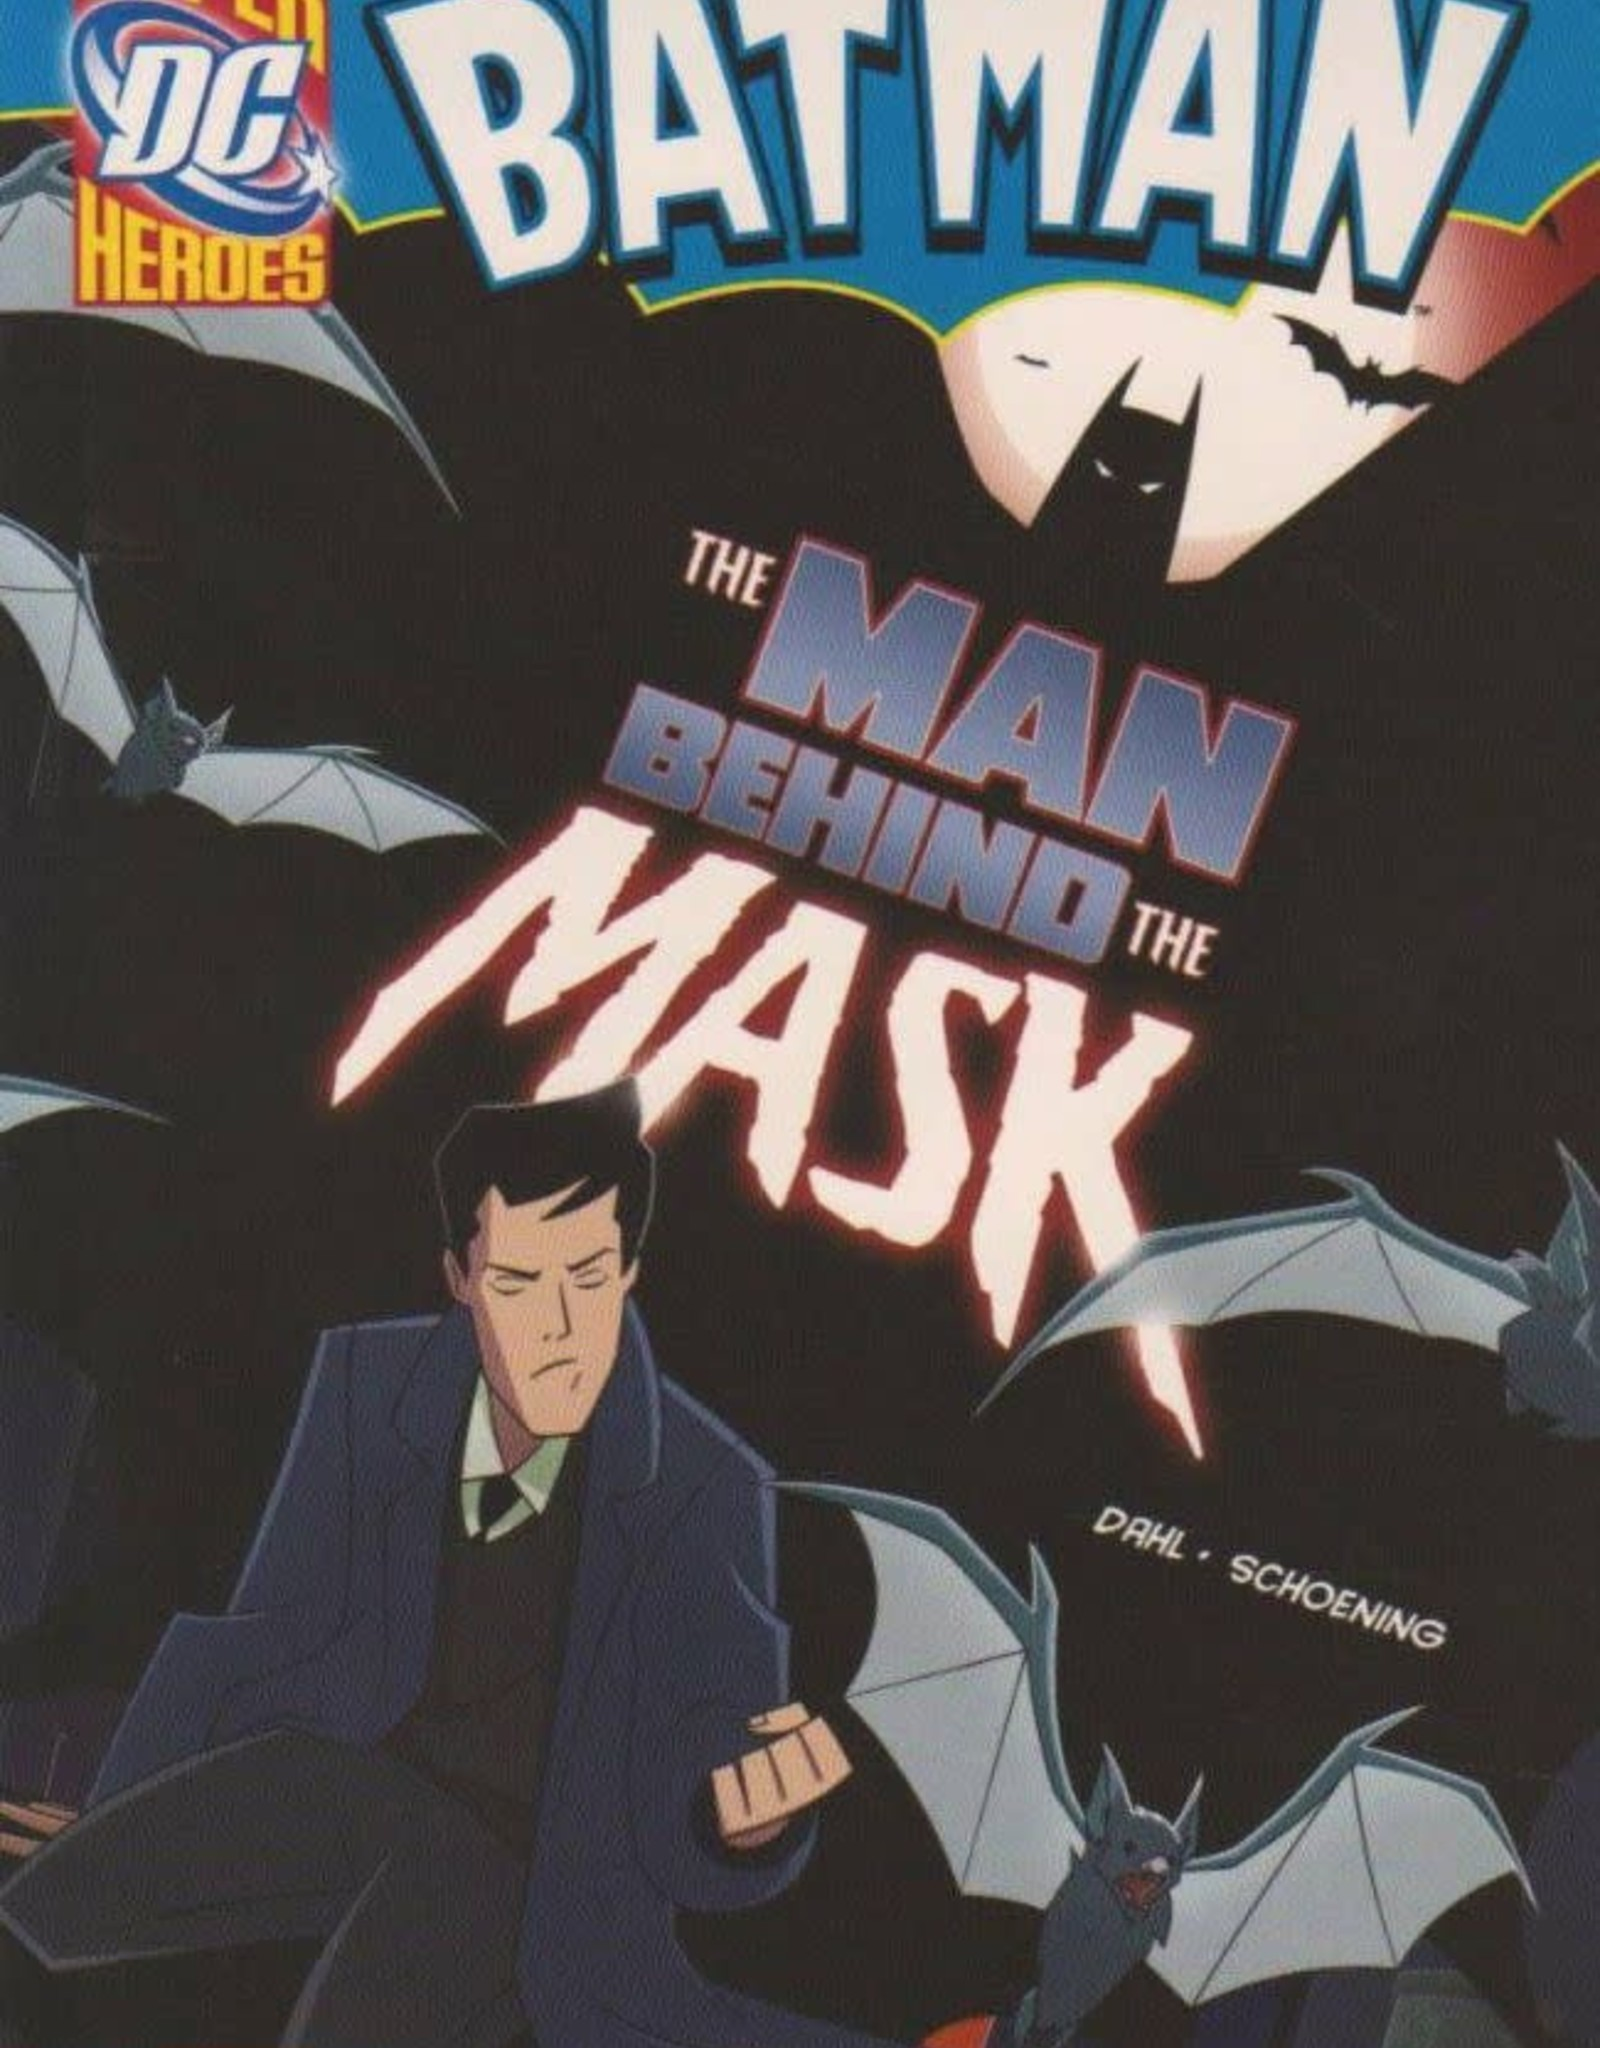 Stone Arch Books DC Super Heroes Batman The Man Behind the Mask